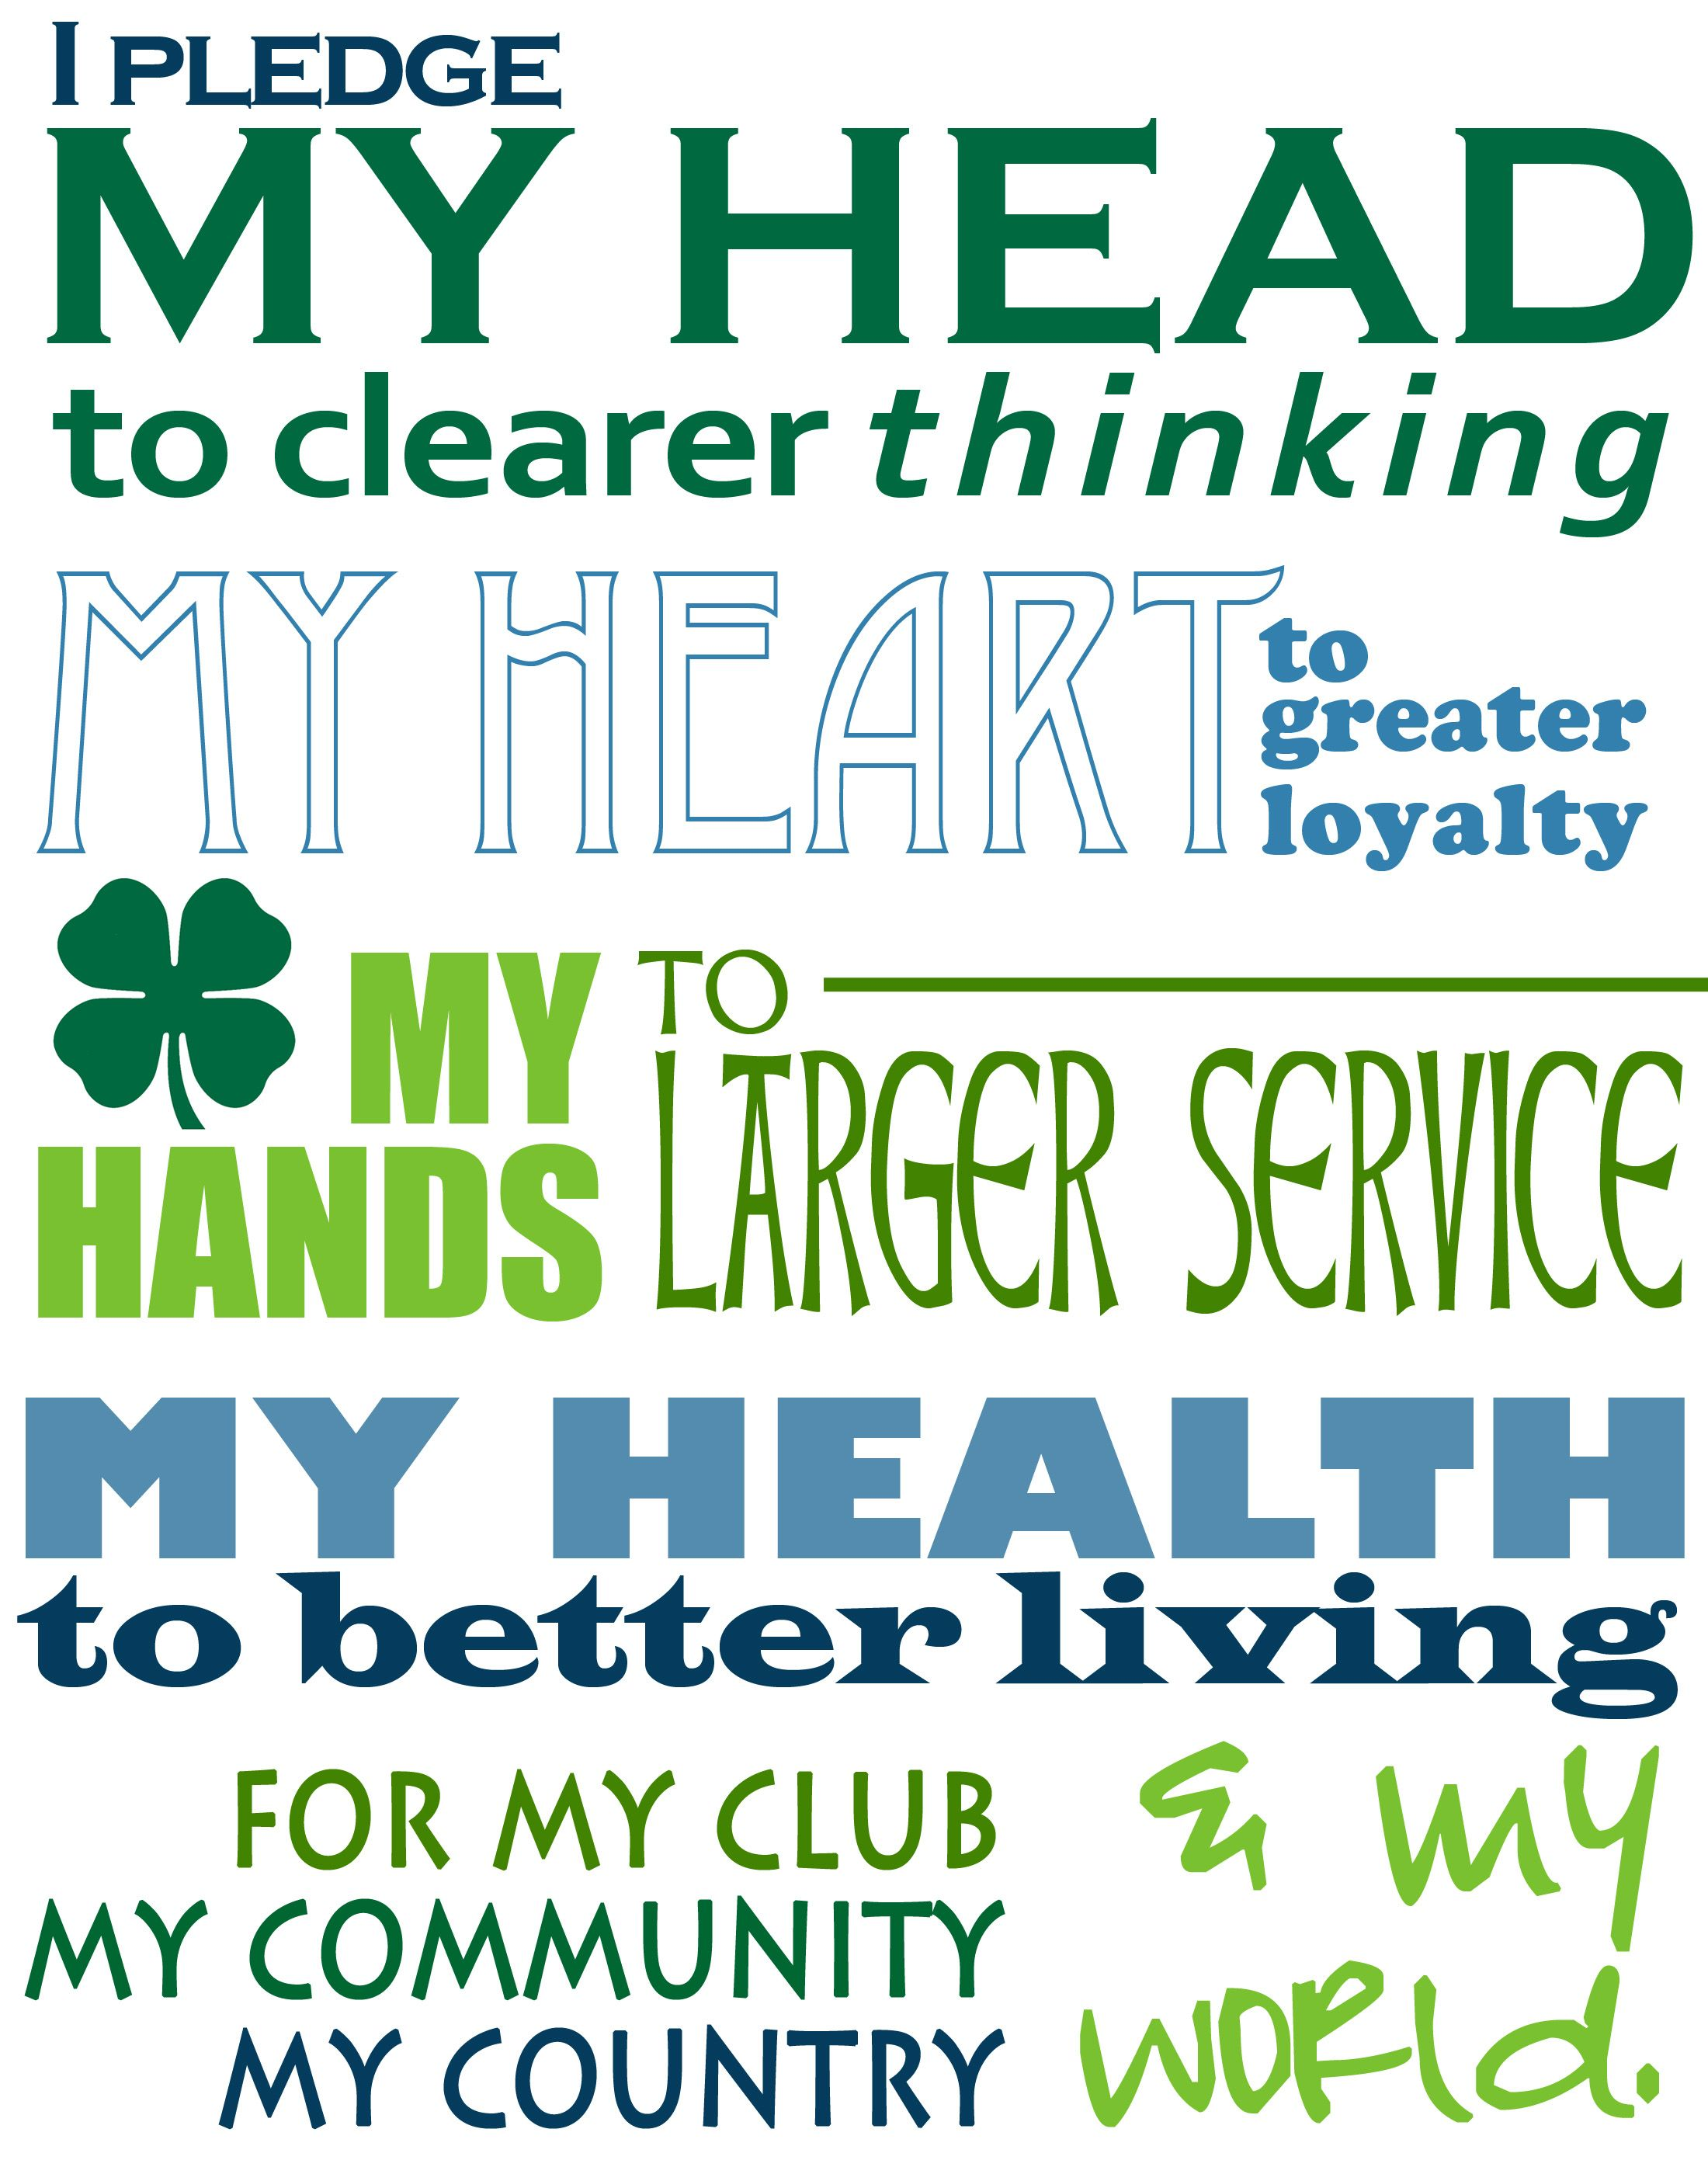 photograph about 4-h Pledge Printable known as 4-H incorporates specified Numerous lifestyle courses, produced younger peoples